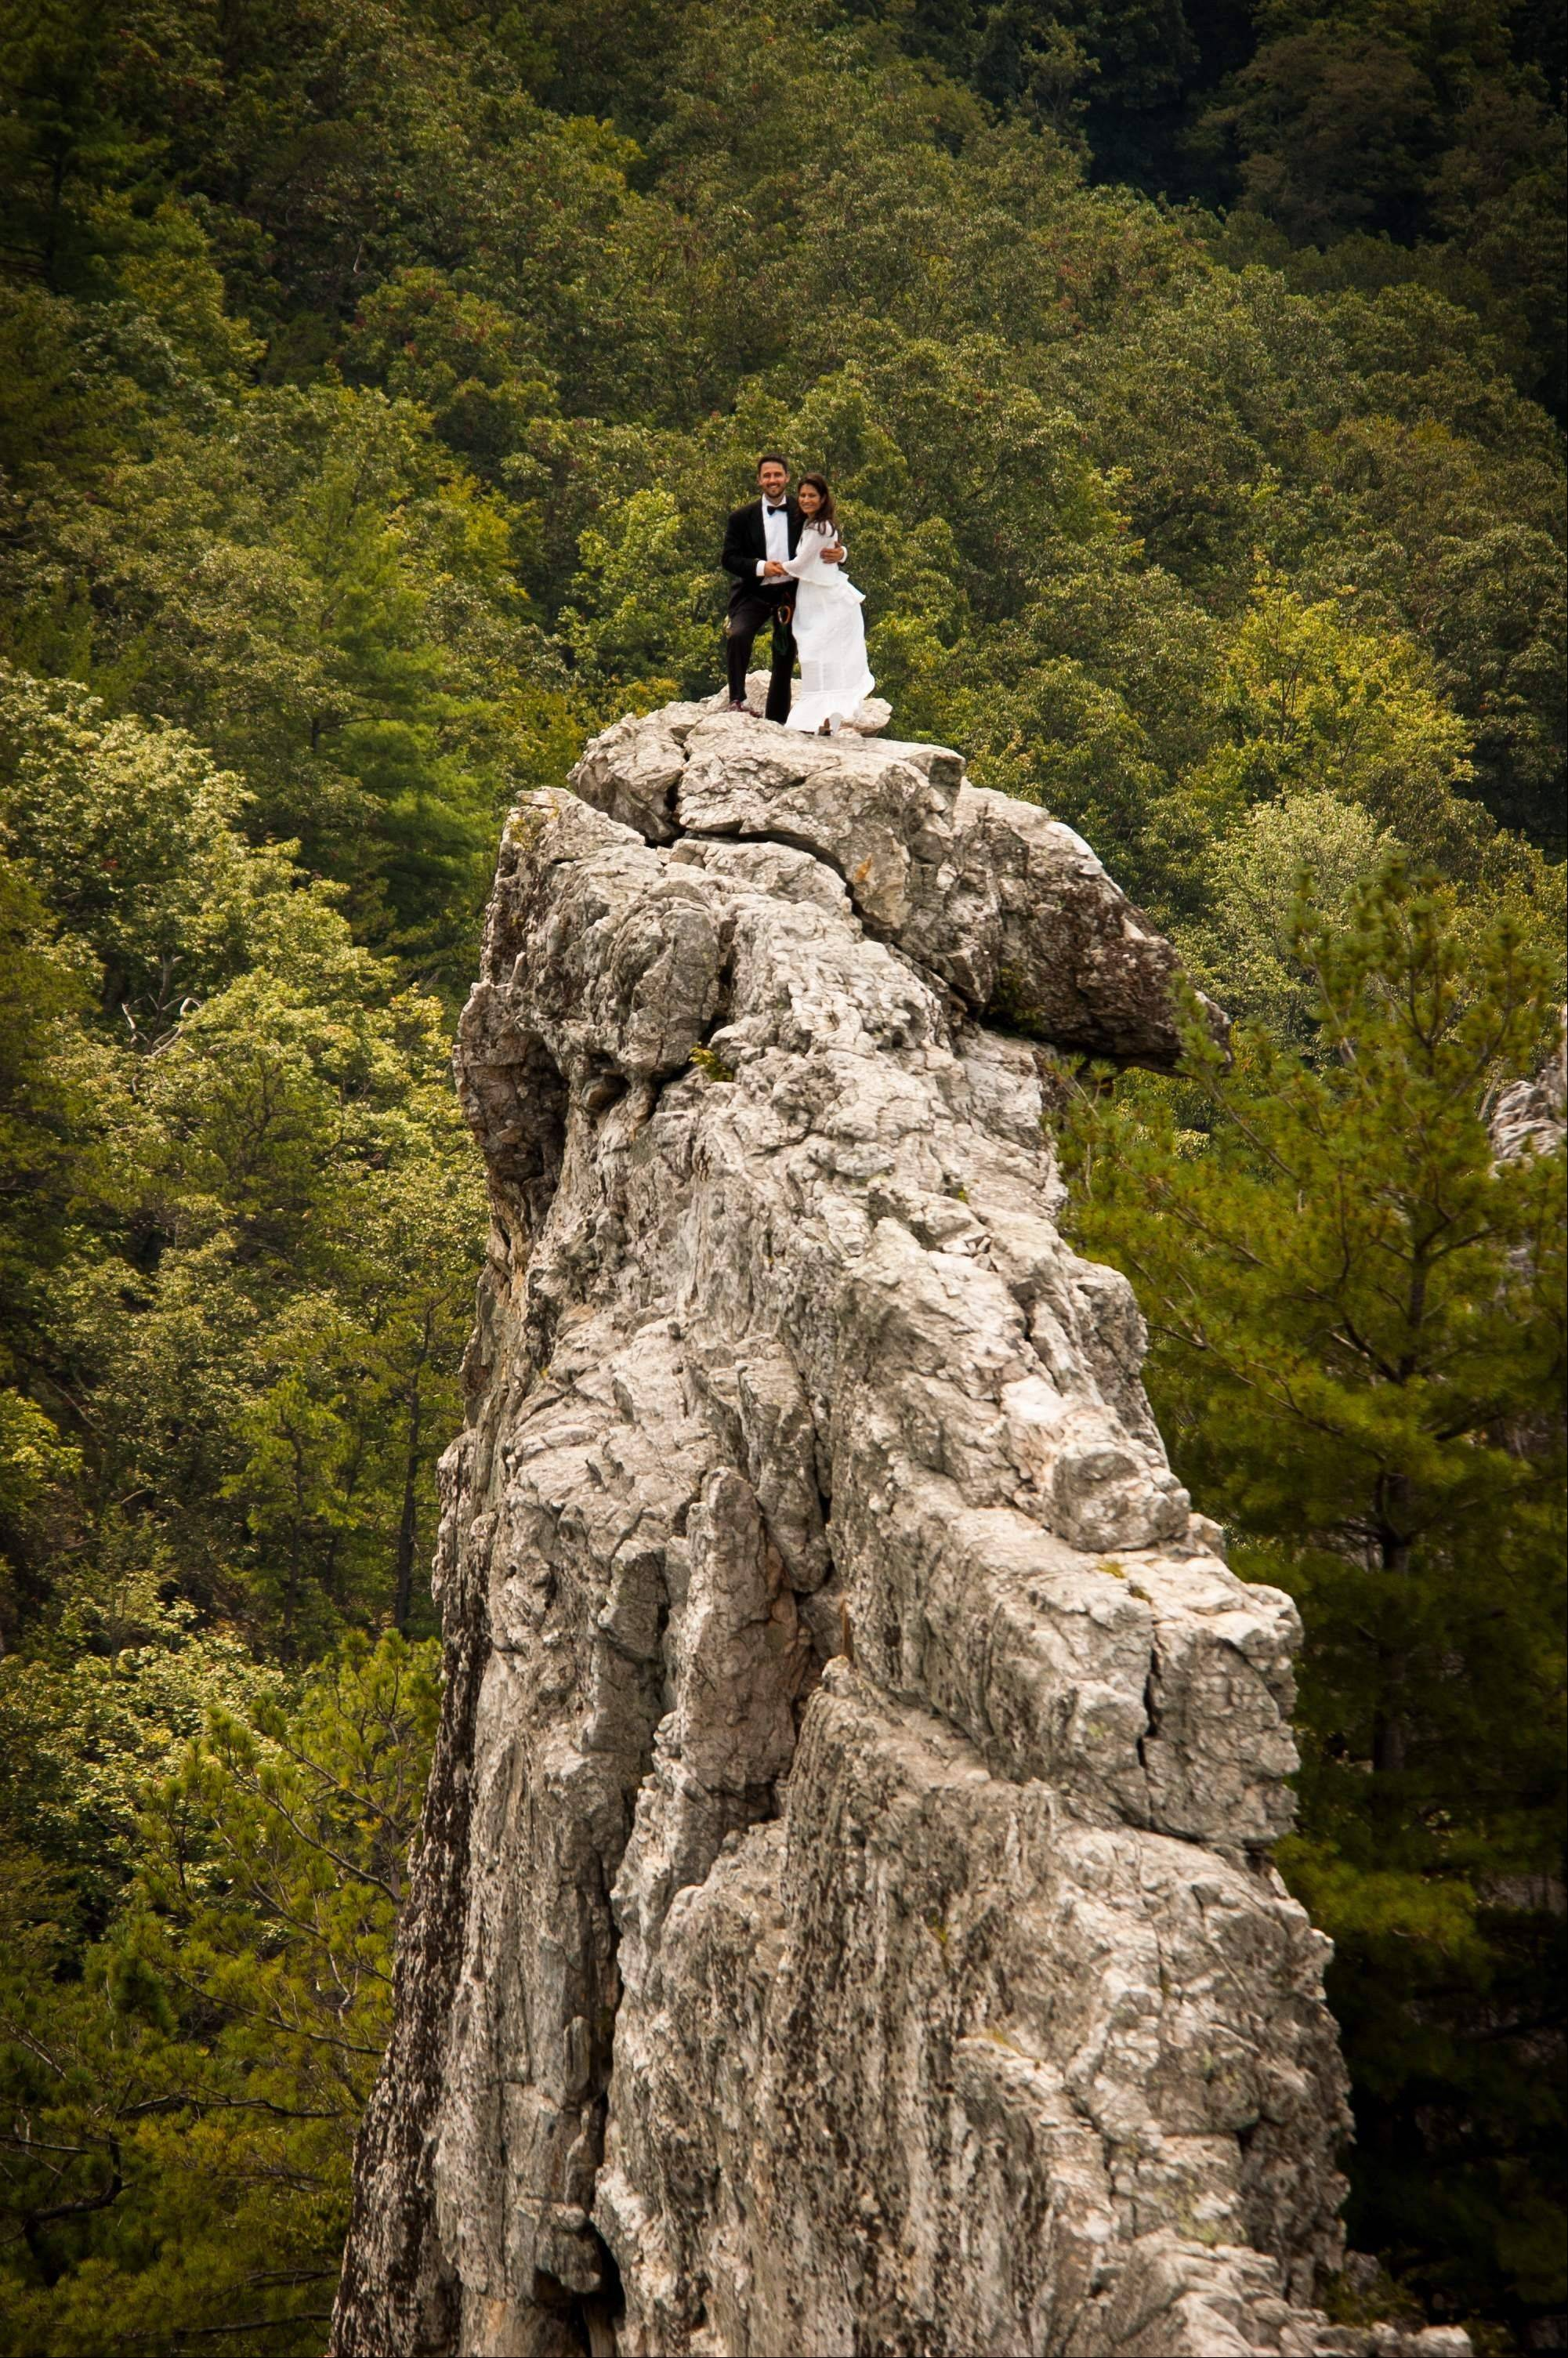 Bob Ewing, 32, right, and Antonie Hodge, 30, both of Arlington, Va., pose at Seneca Rocks in W.Va. The couple made the 900-foot climb in formal wedding attire.